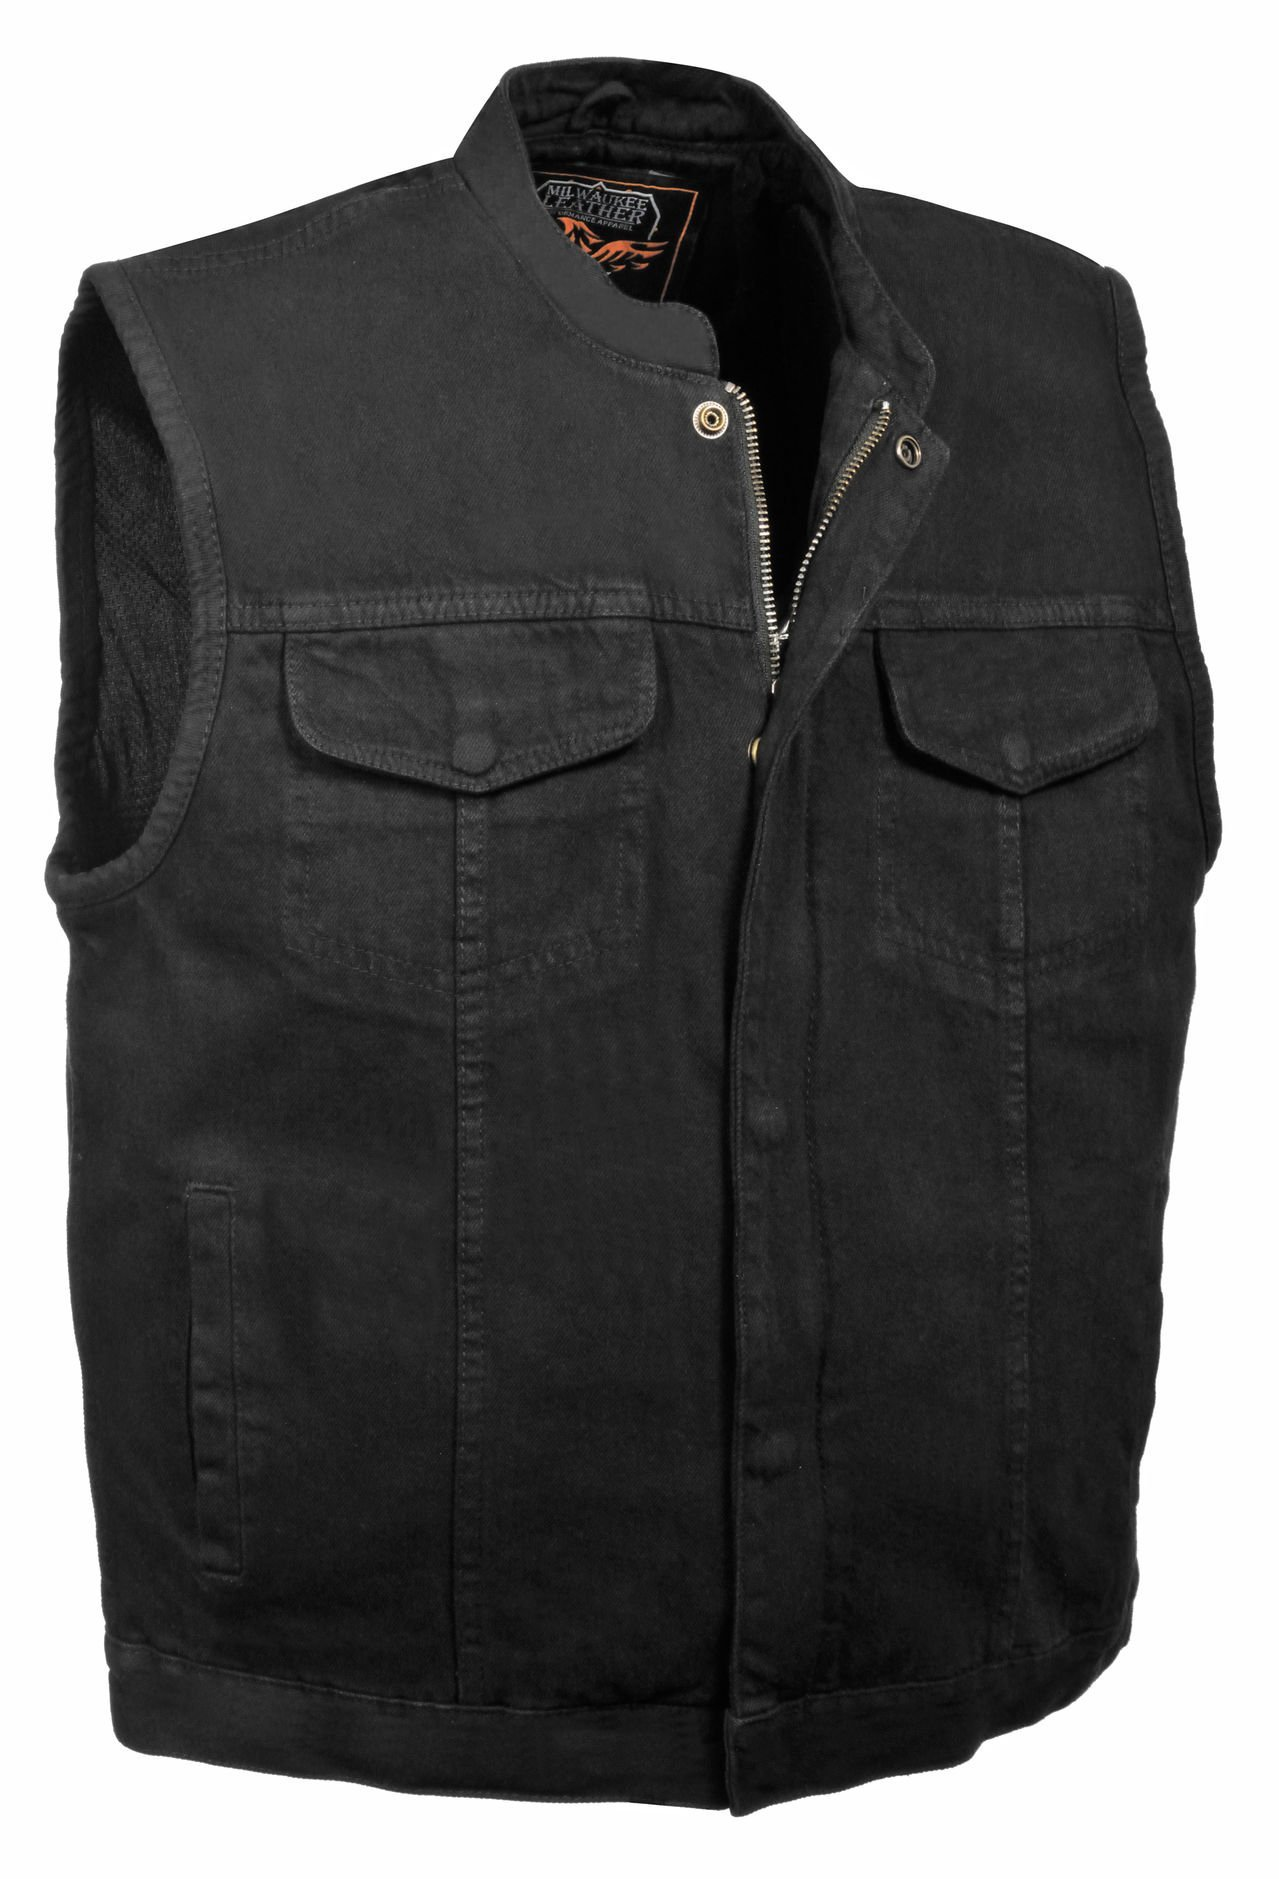 Milwaukee Leather Men's Concealed Snap Denim Club Style Vest w/Hidden Zipper (Black, S)